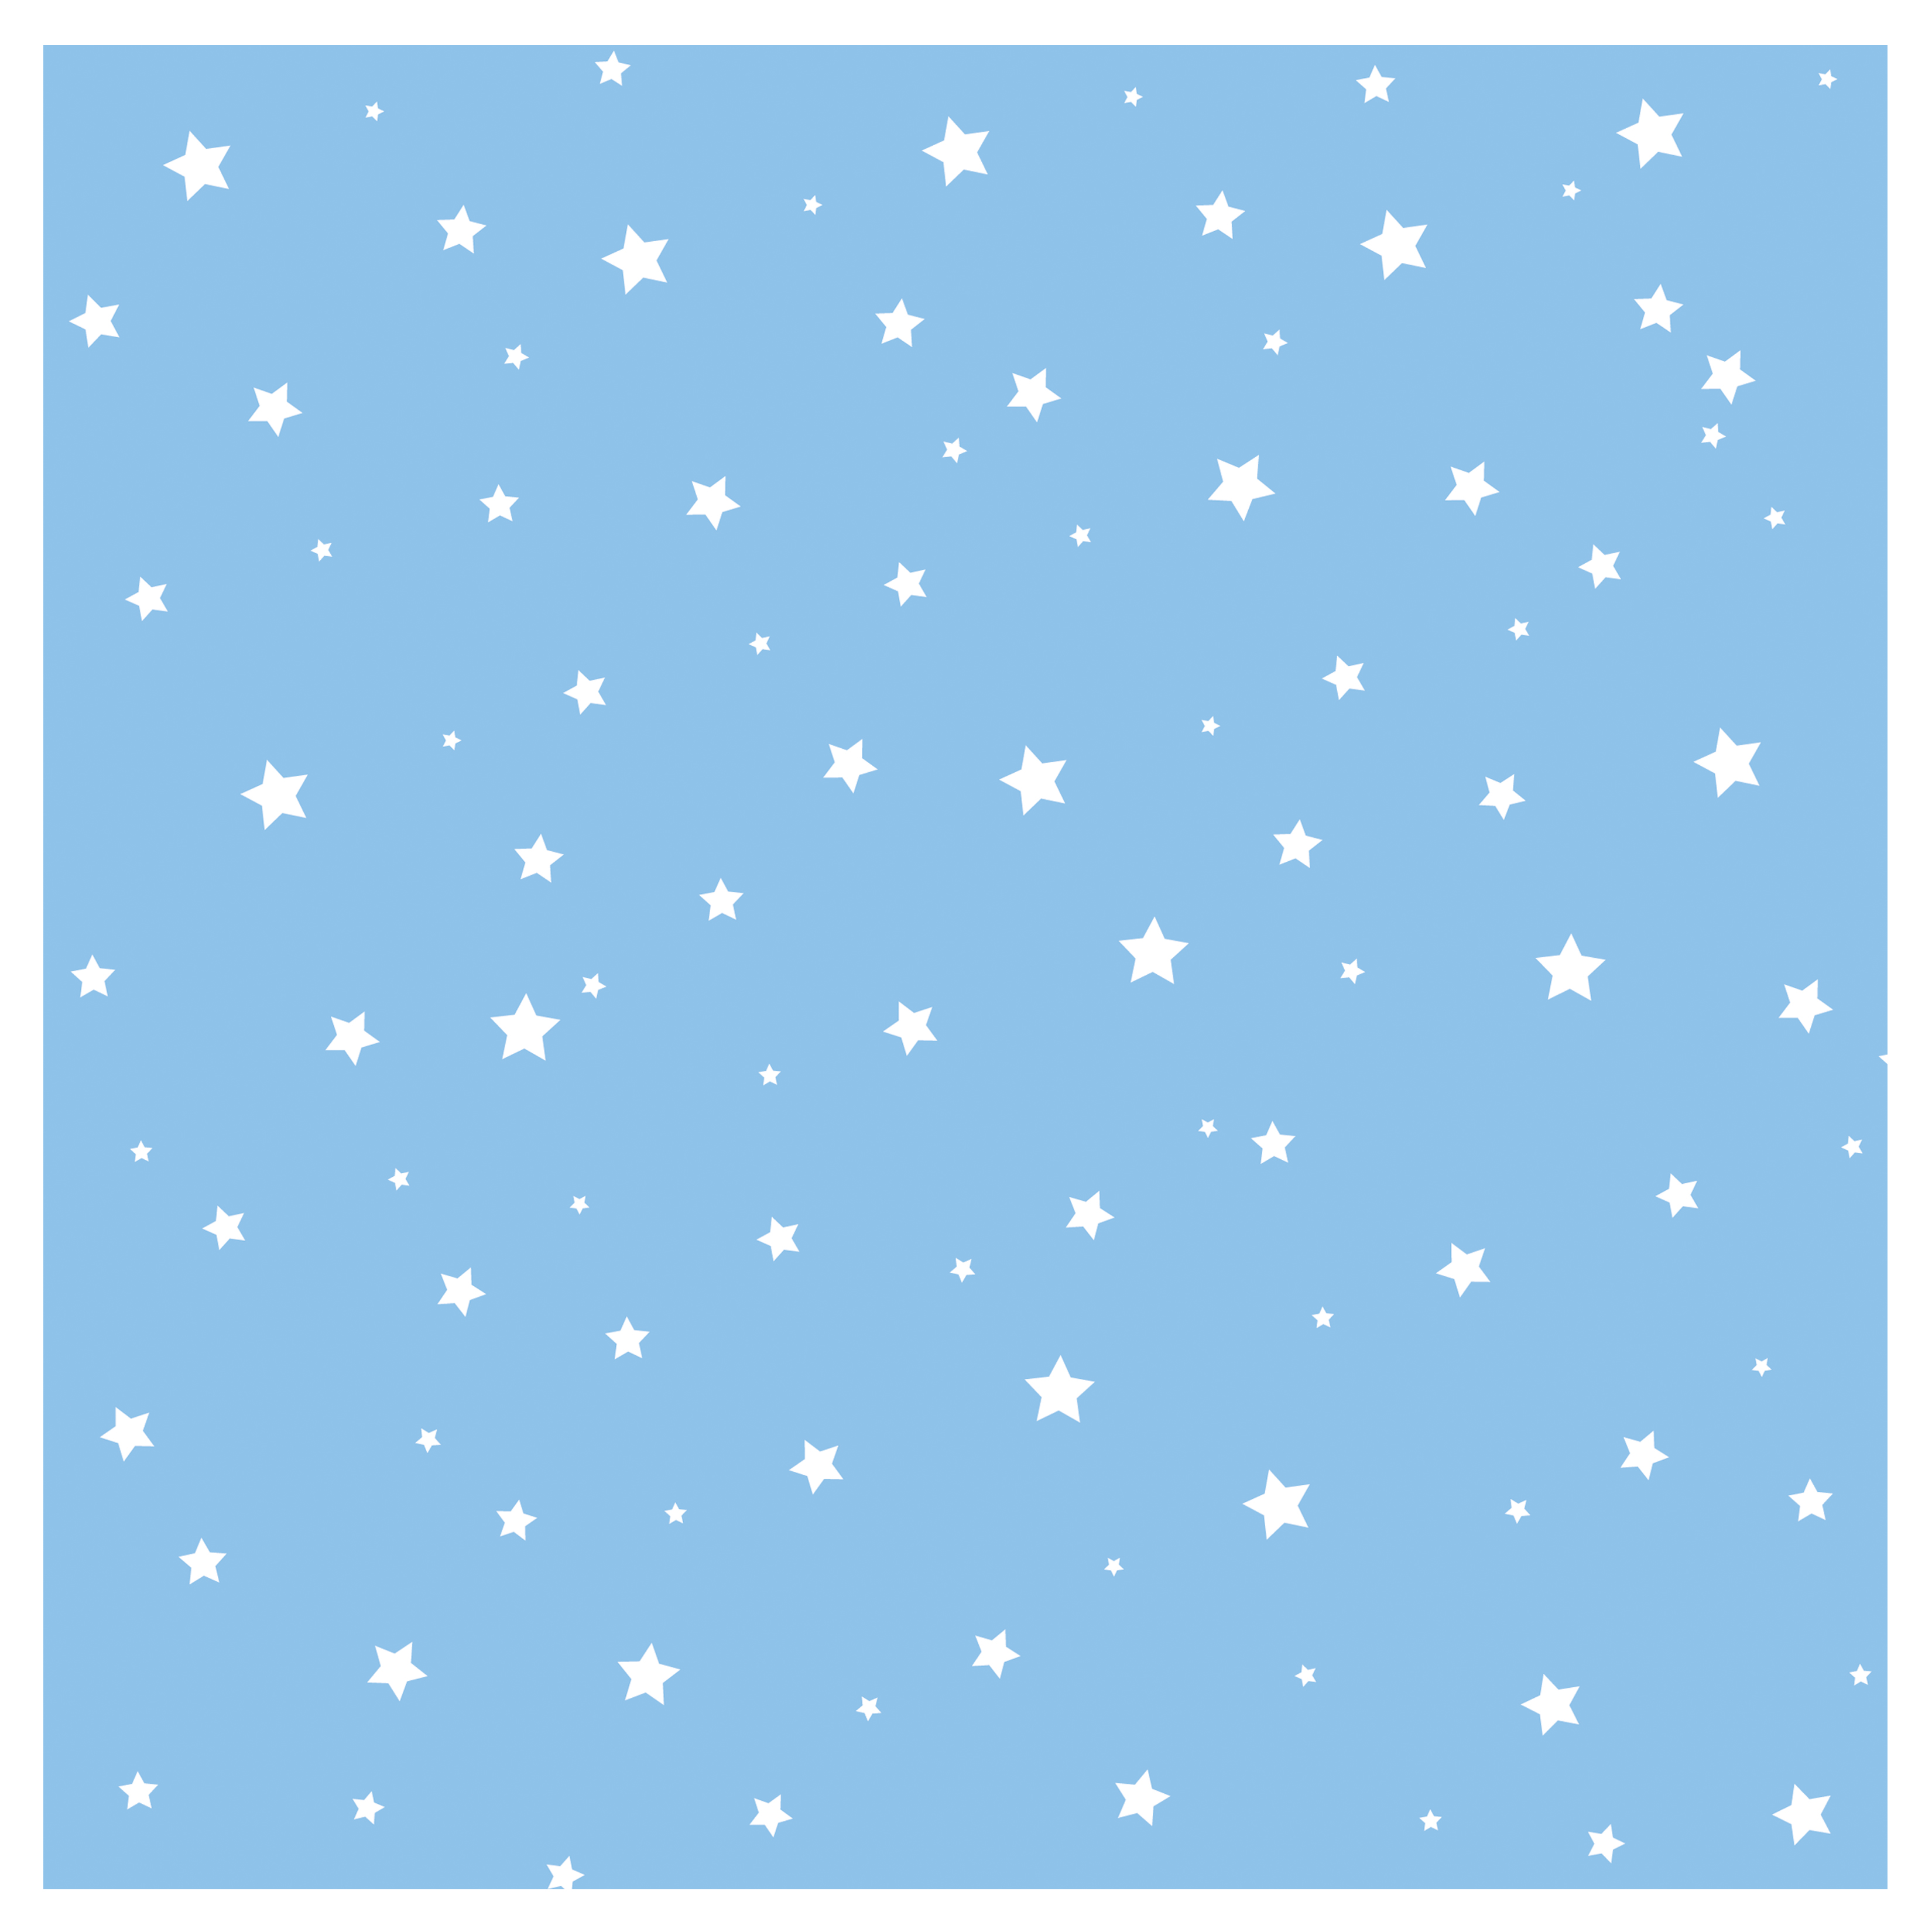 Baby Blue Background for Pinterest 3300x3300